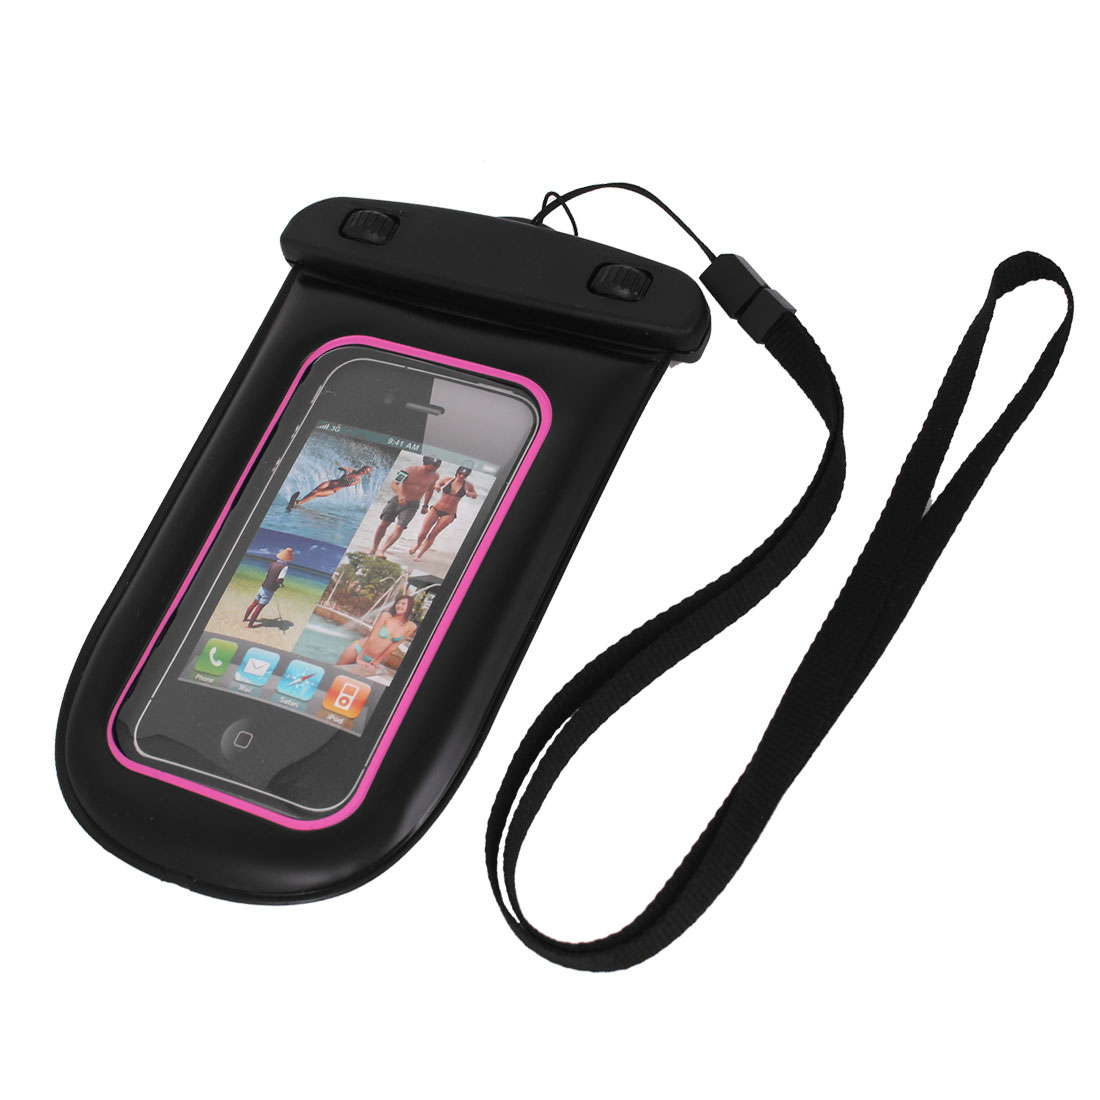 Waterproof Swimming Bag Holder for iPhone 5/5S w Neck Strap